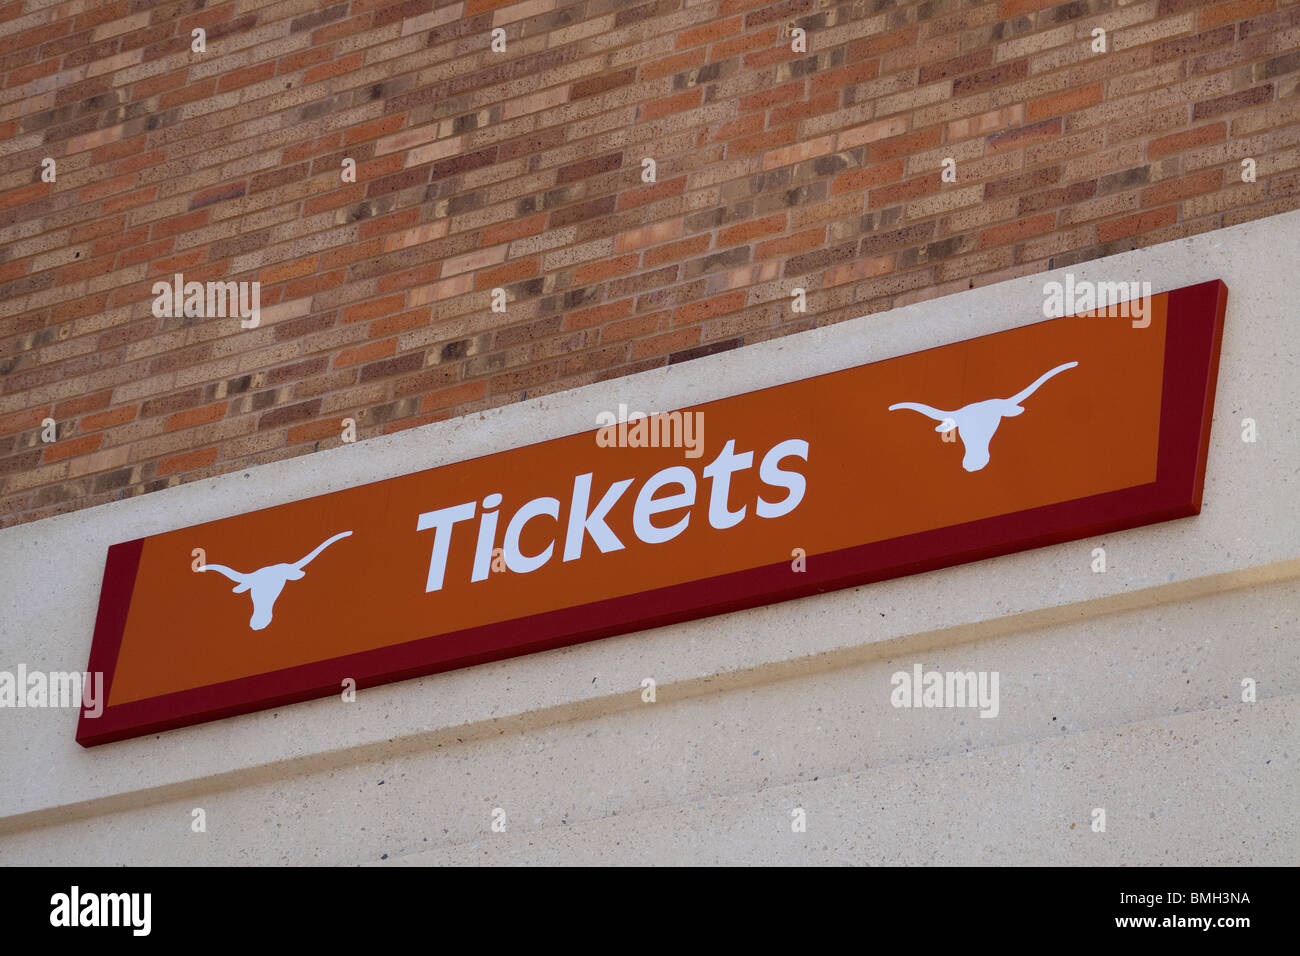 Tickets sign at Darrell K Royal longhorn football stadium at University of Texas at Austin - Stock Image